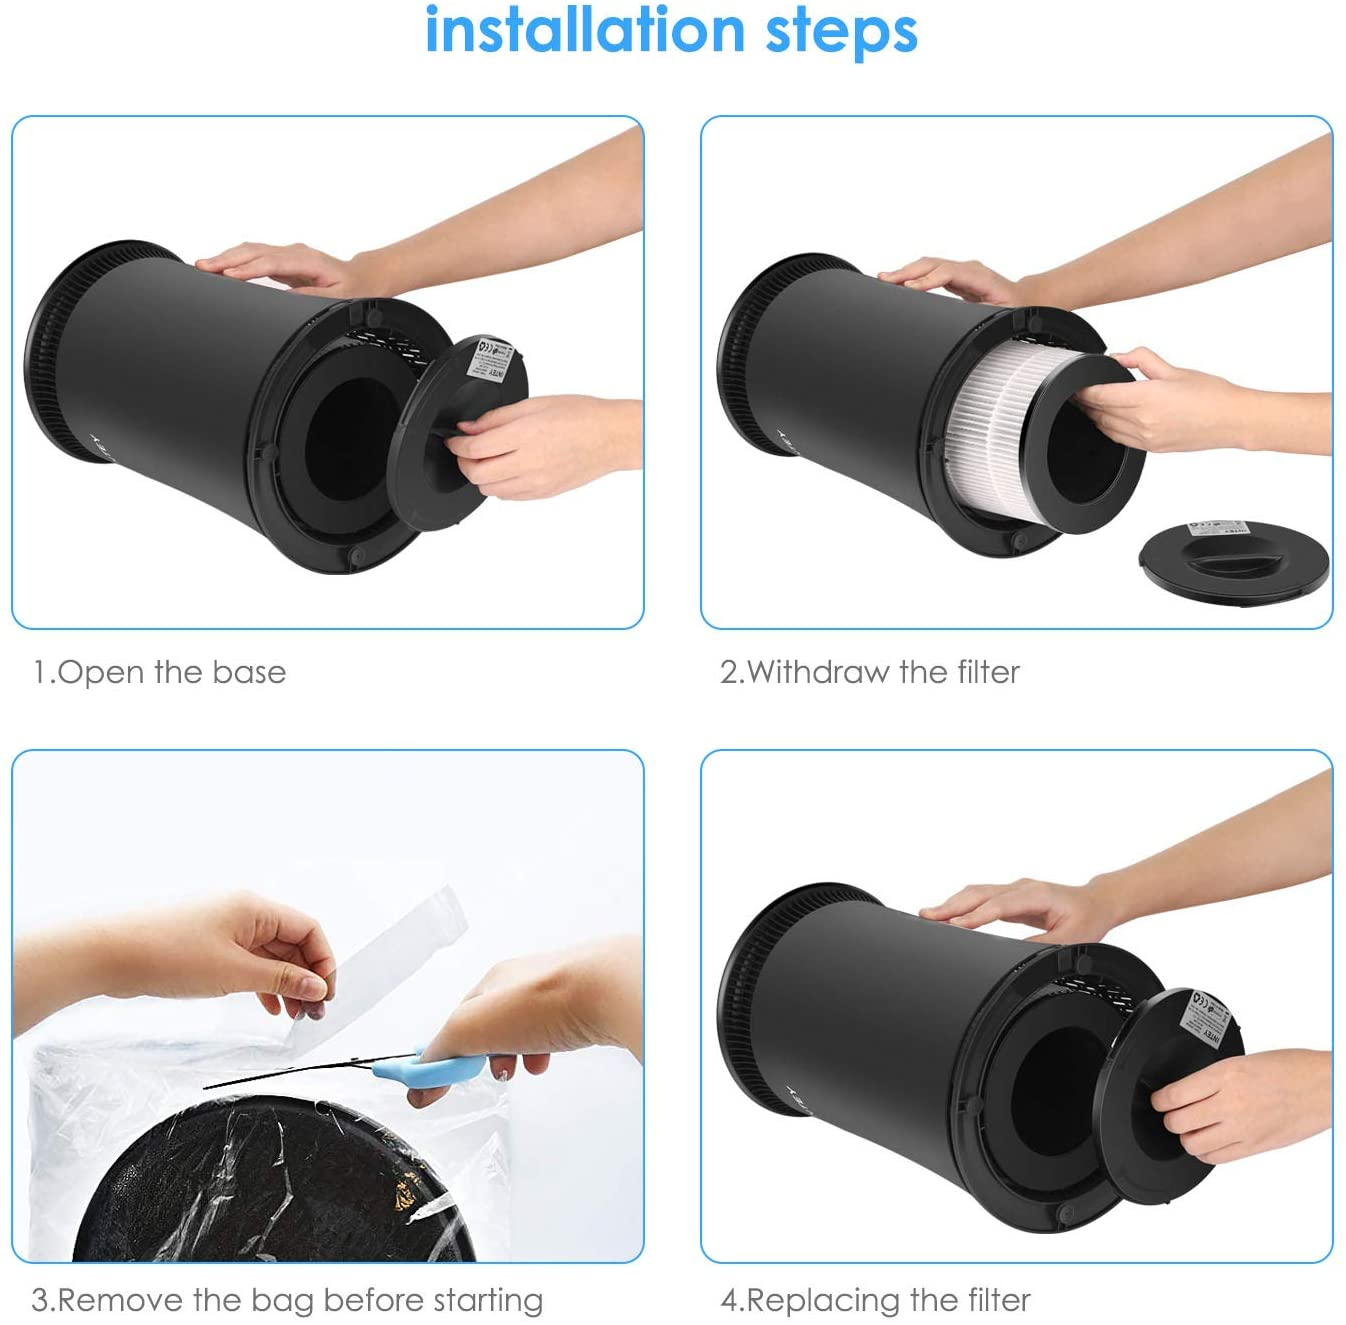 INTEY HEPA Air Purifier installation